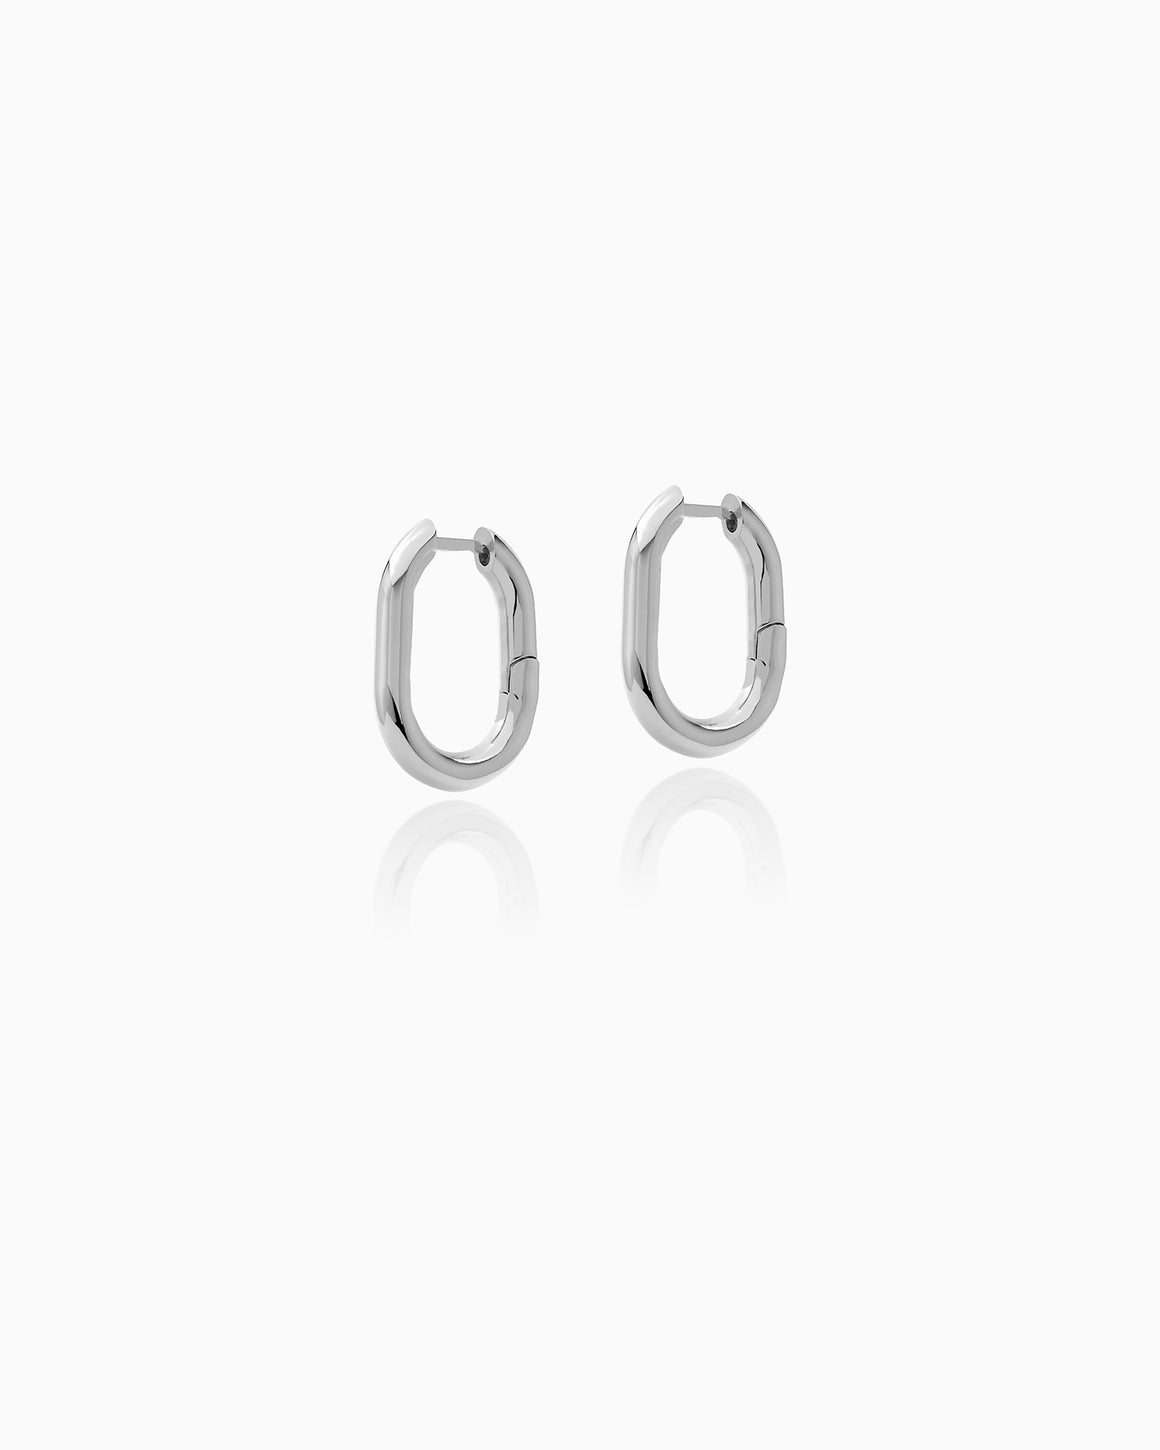 EARRING CHRISTY SILVER